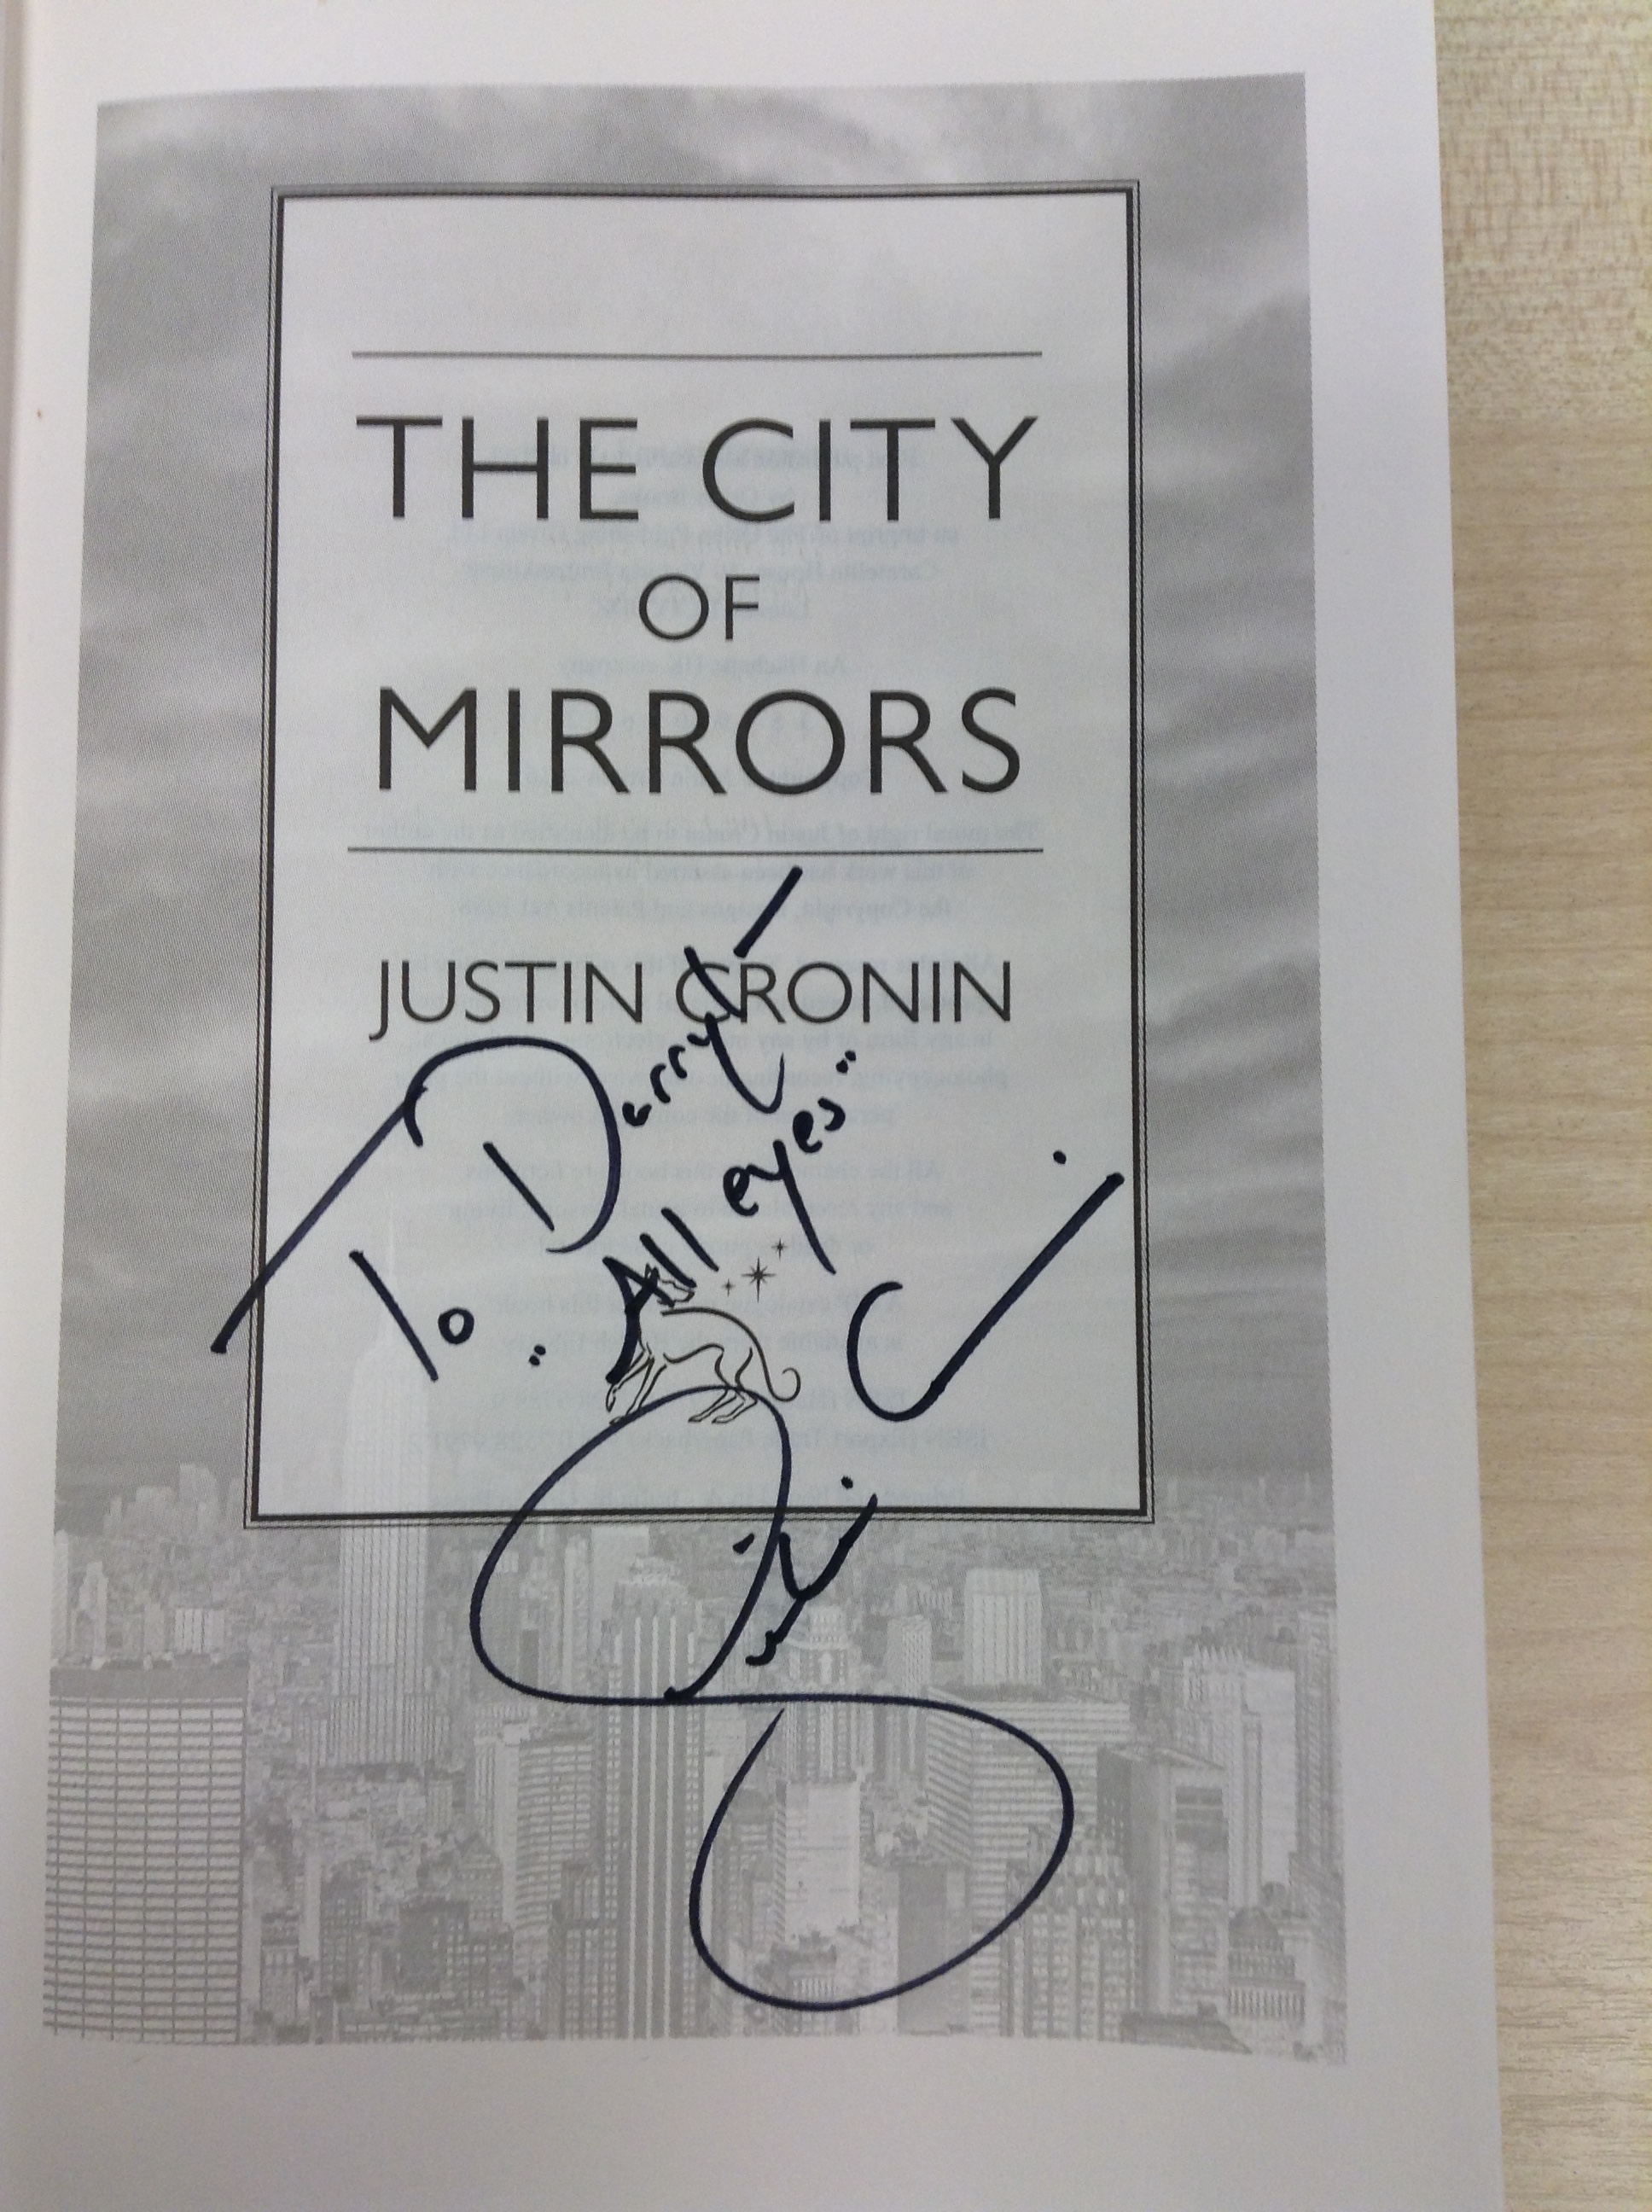 Signed copy of The City of Mirrors